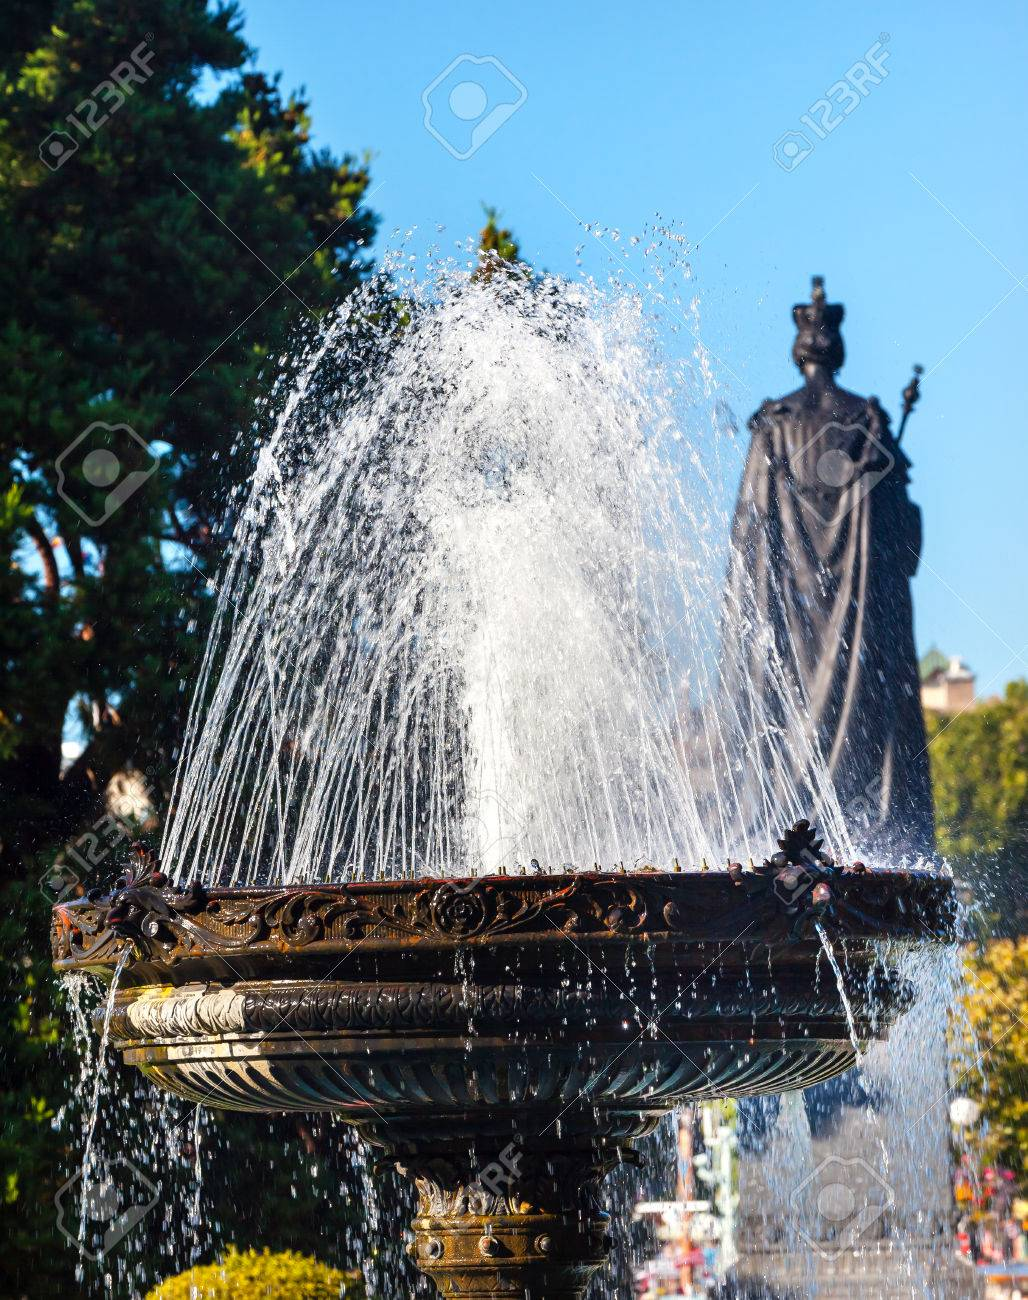 Water fountains with statues - Fountain Water Flowing Queen Victoria Statue Provincial Capital Legislative Parliament Buildiing Victoria British Columbia Canada Stock